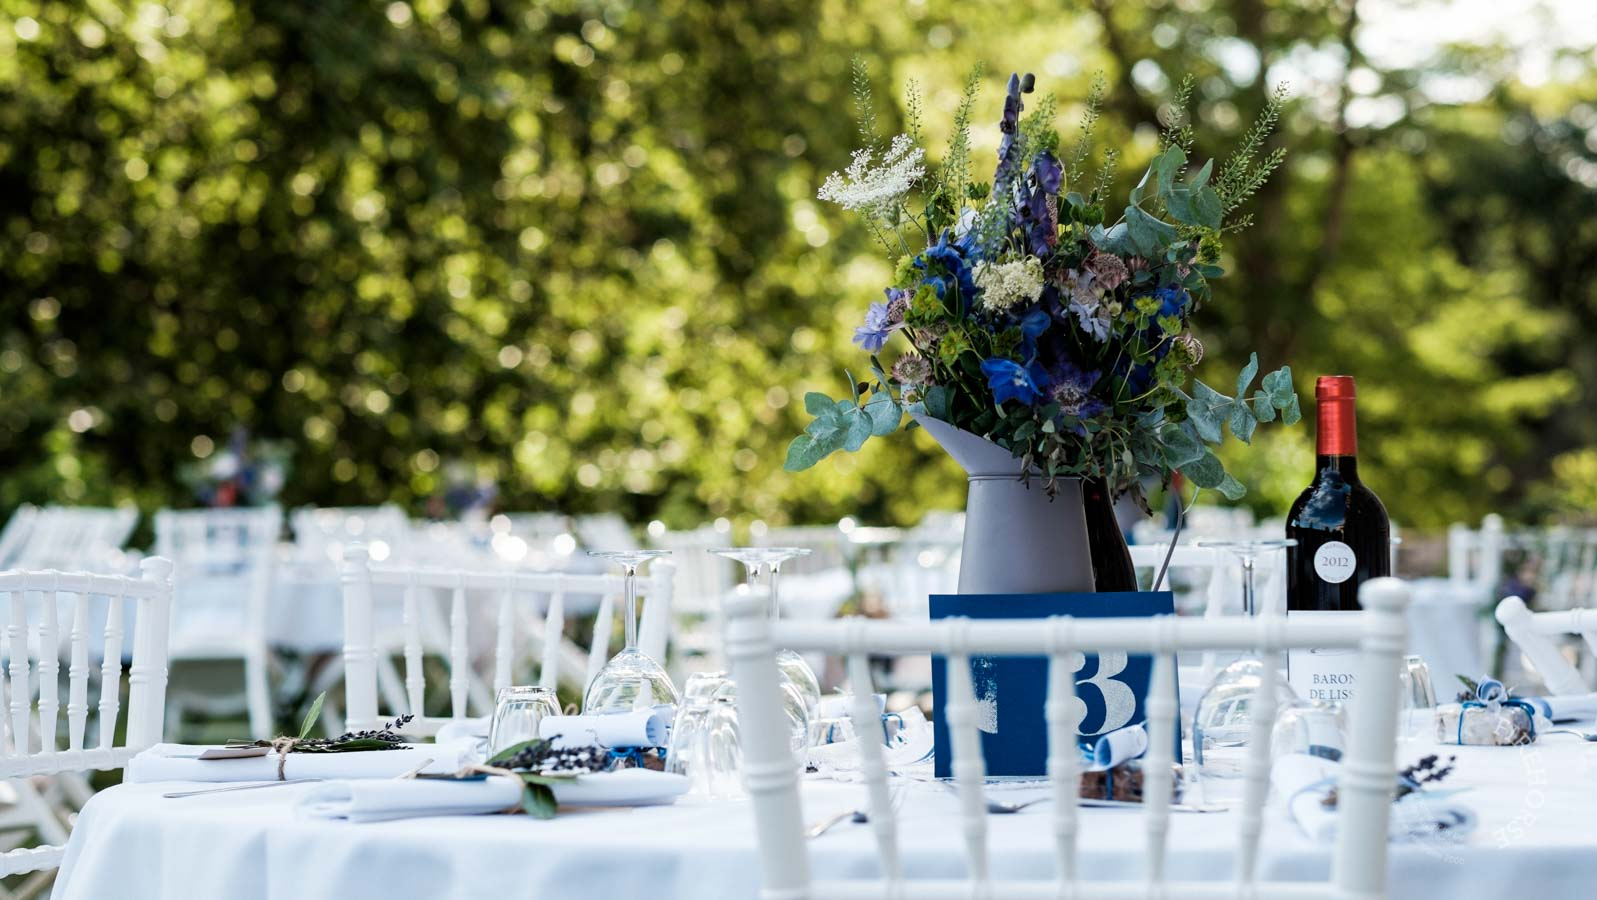 Lot-et-Garonne-Wedding-Photography-304